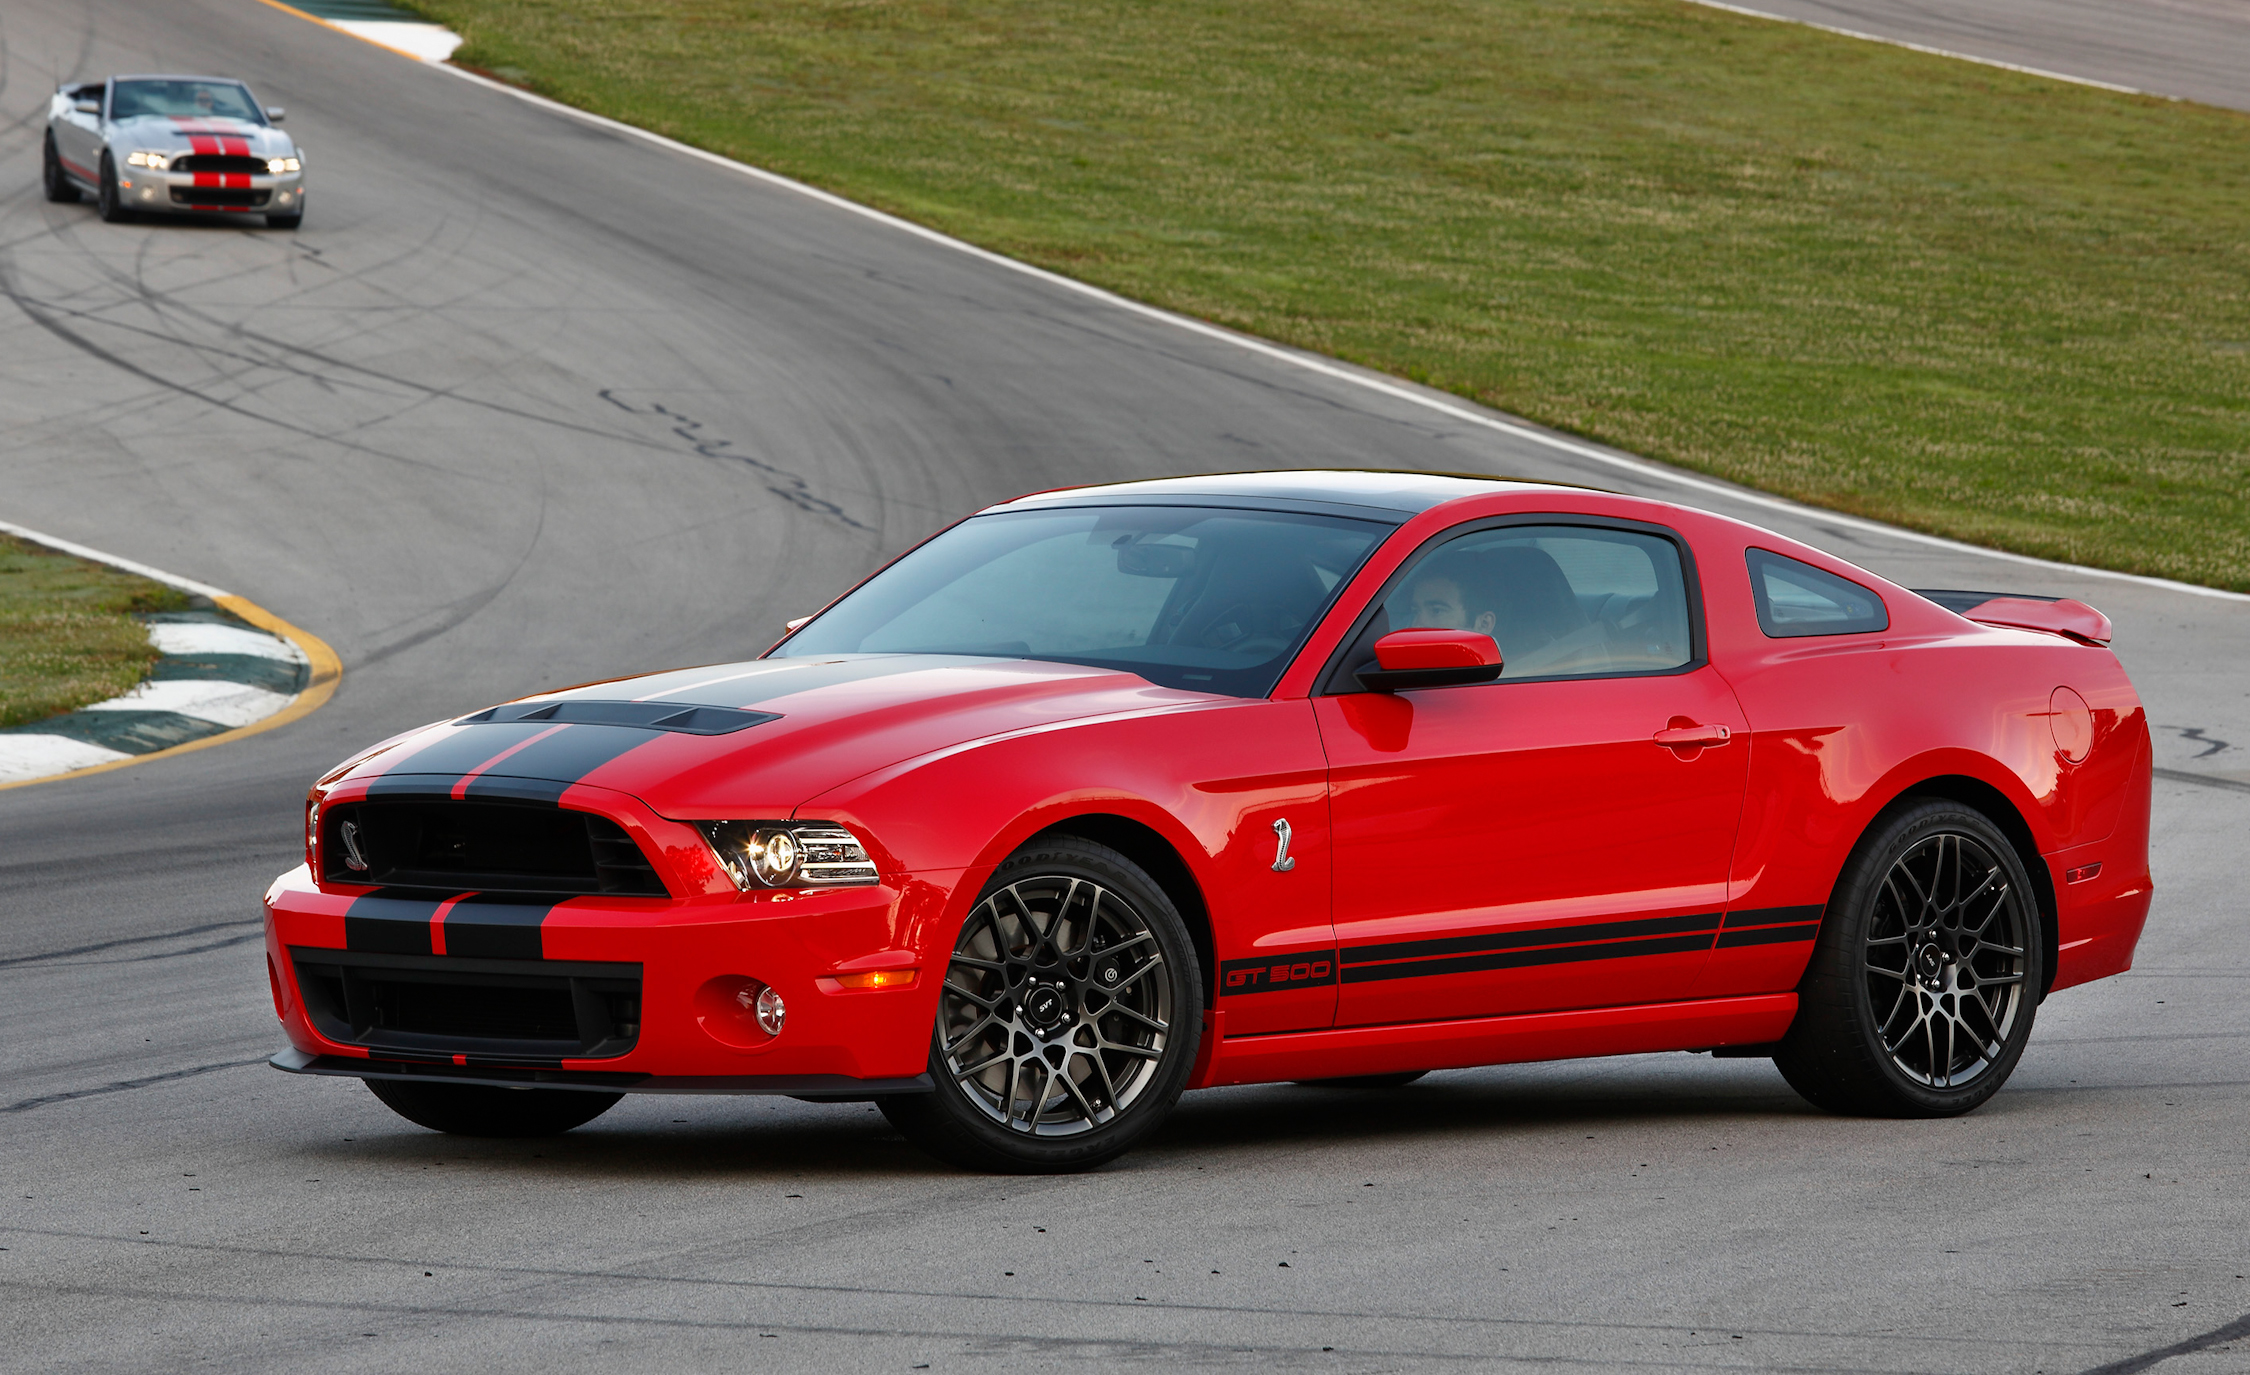 2013 Ford Mustang Shelby GT500 Red Exterior Front And Side (Photo 30 of 47)